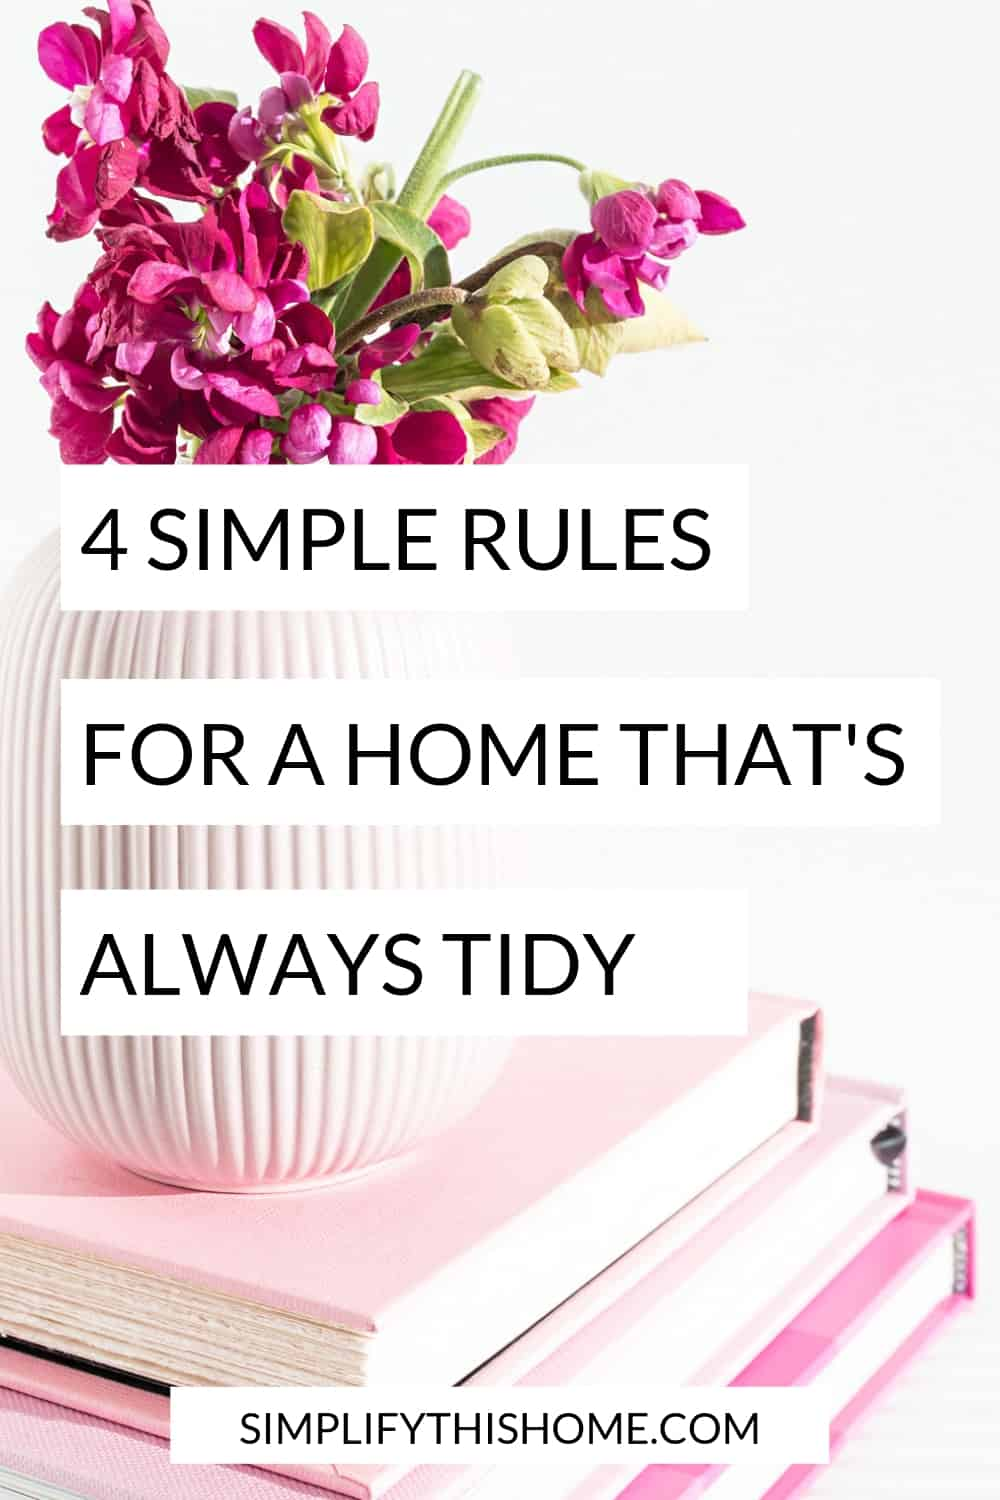 Four simple rules for a home that's always tidy